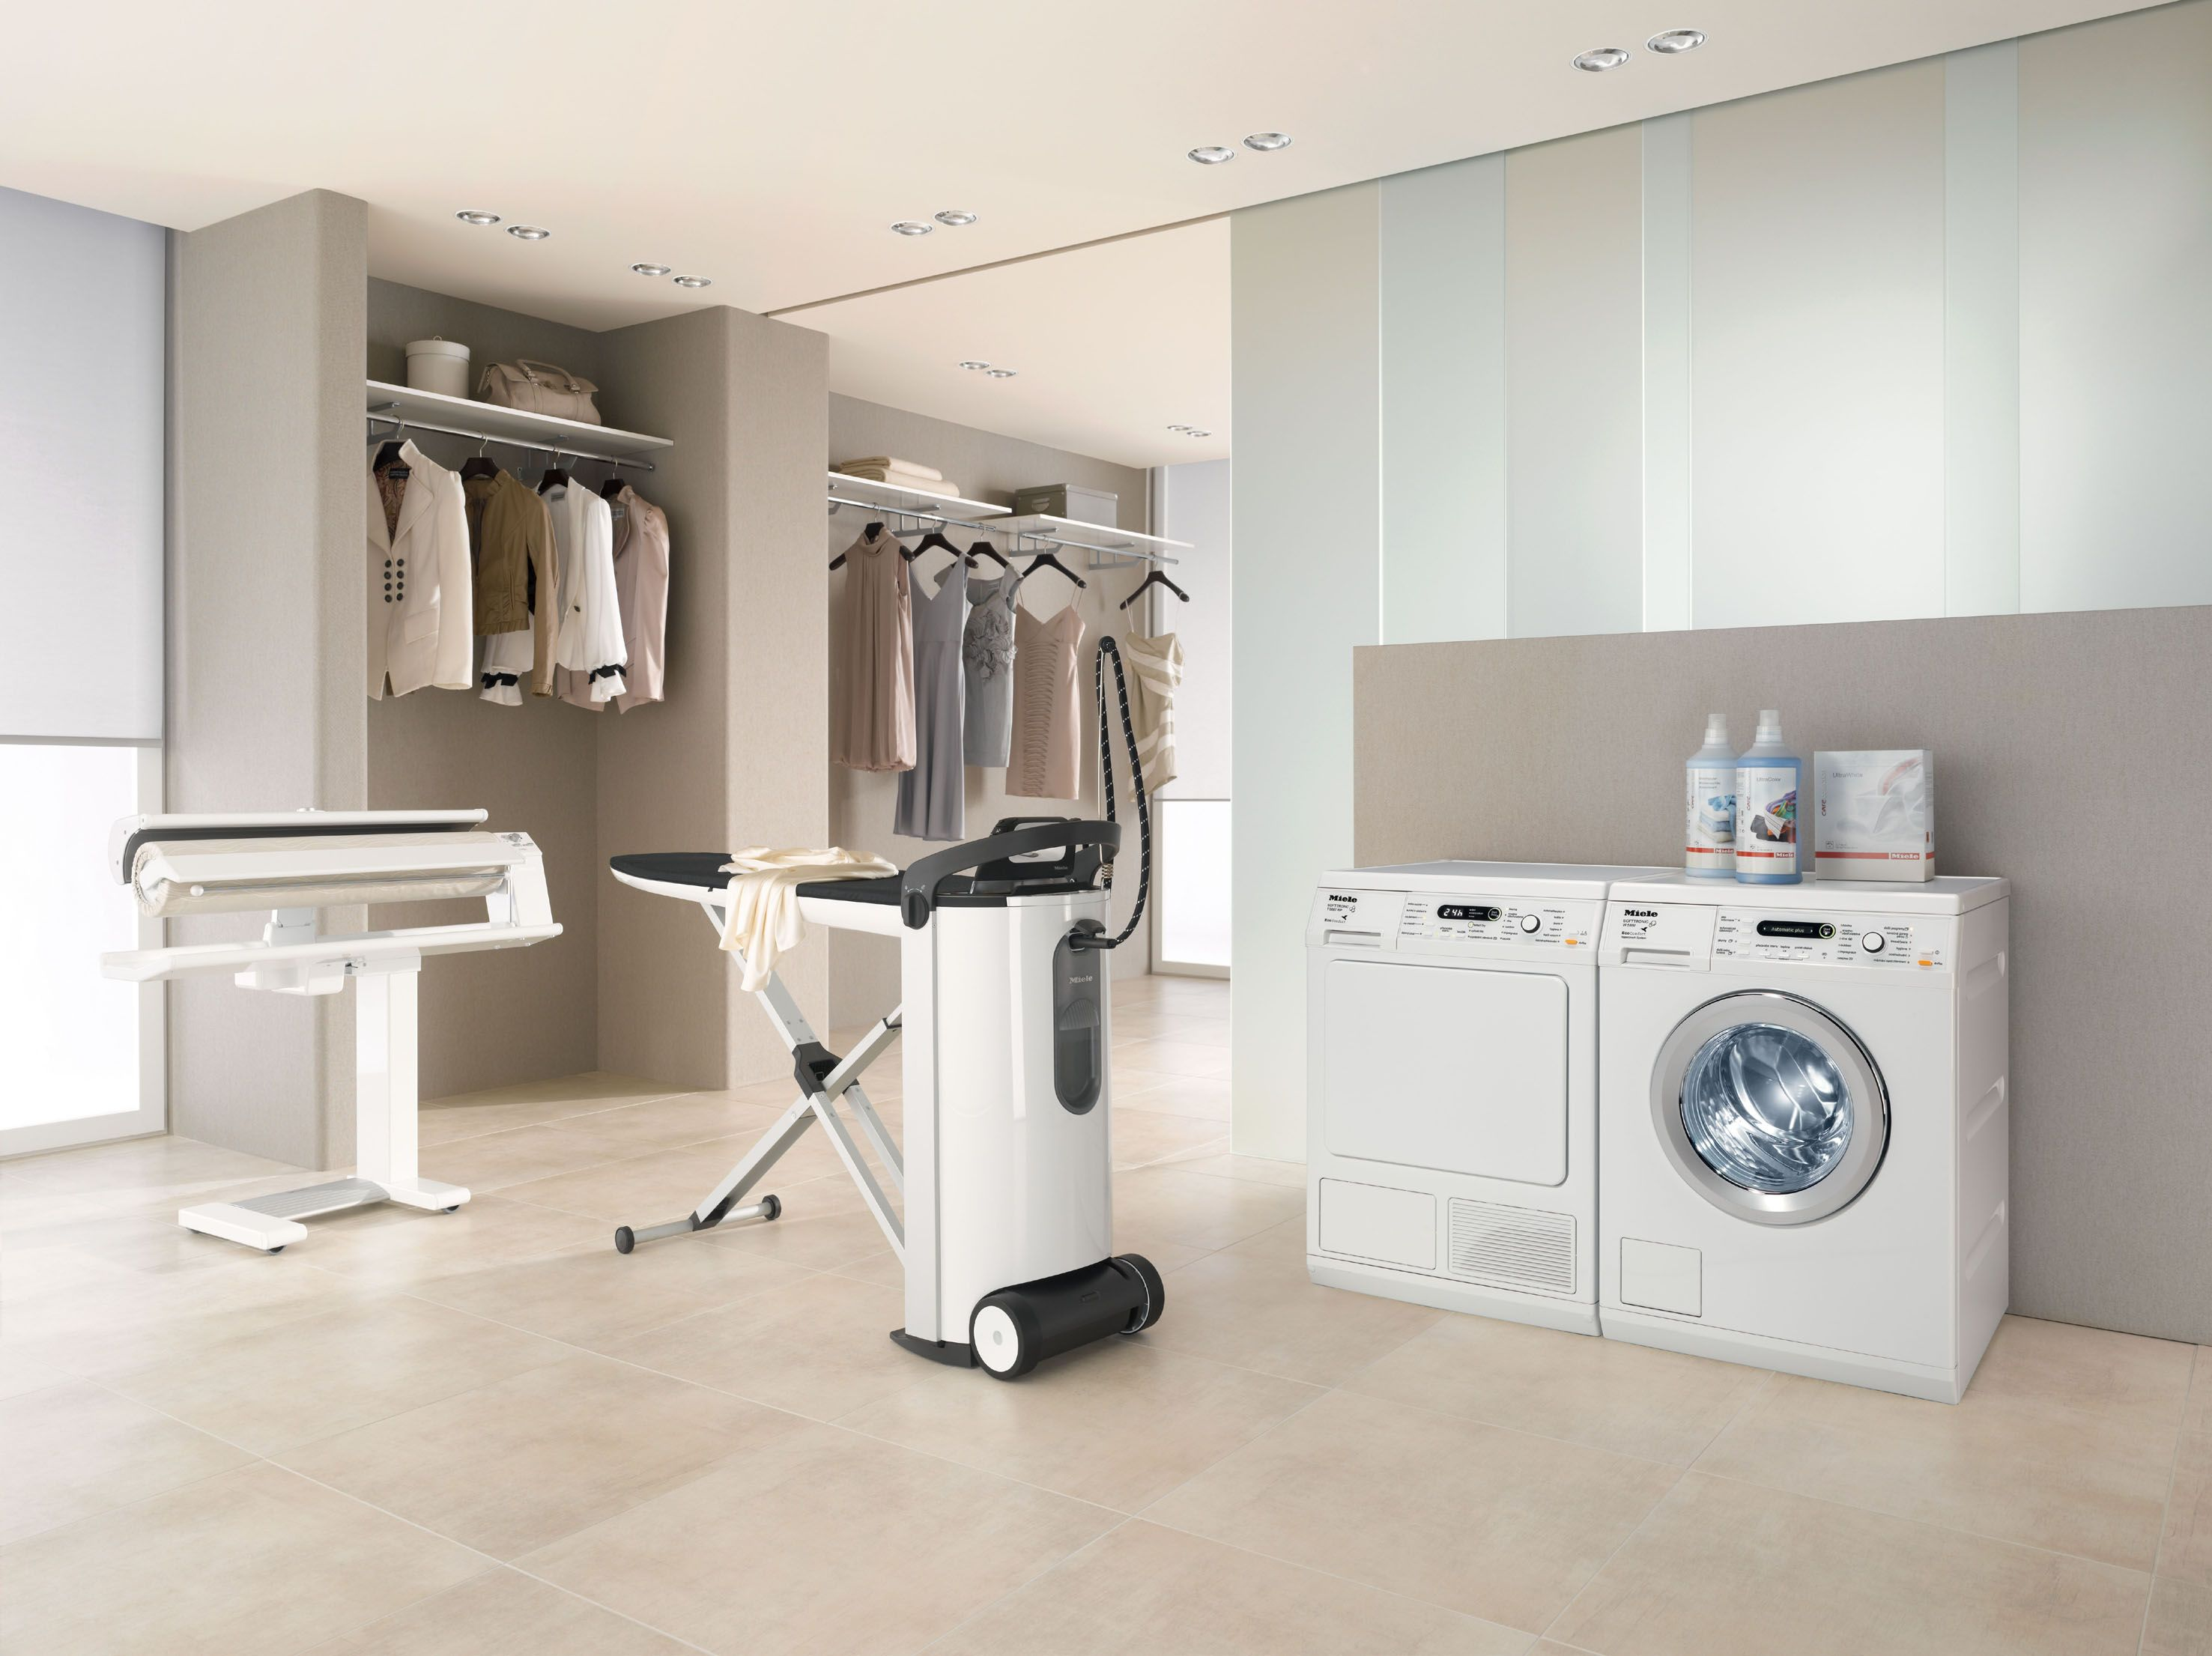 Lavanderia Miele Sistema Bucato Integrato Miele Ged Washing Machine Home